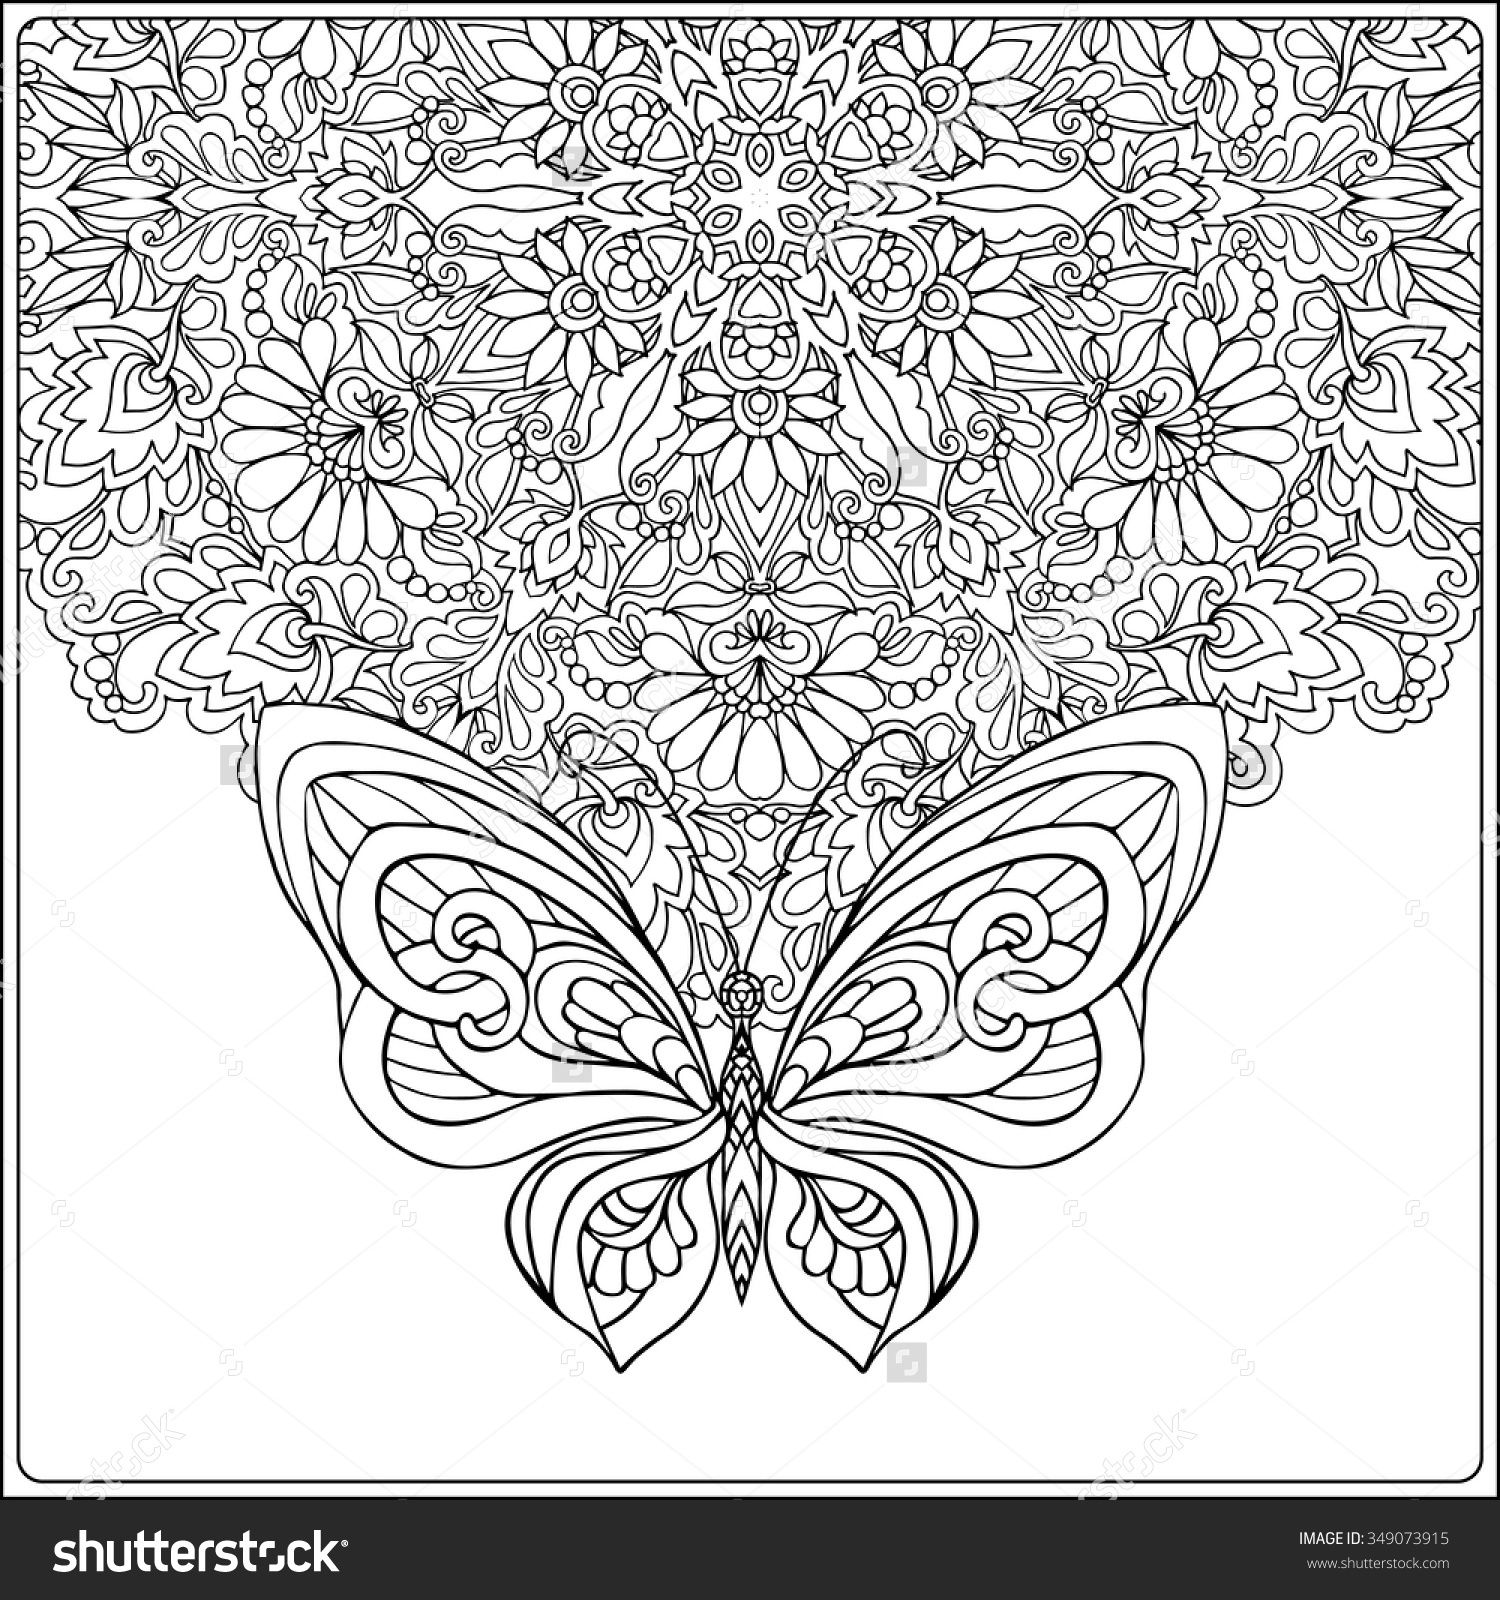 Floral Mandala Colouring Pages For Adults